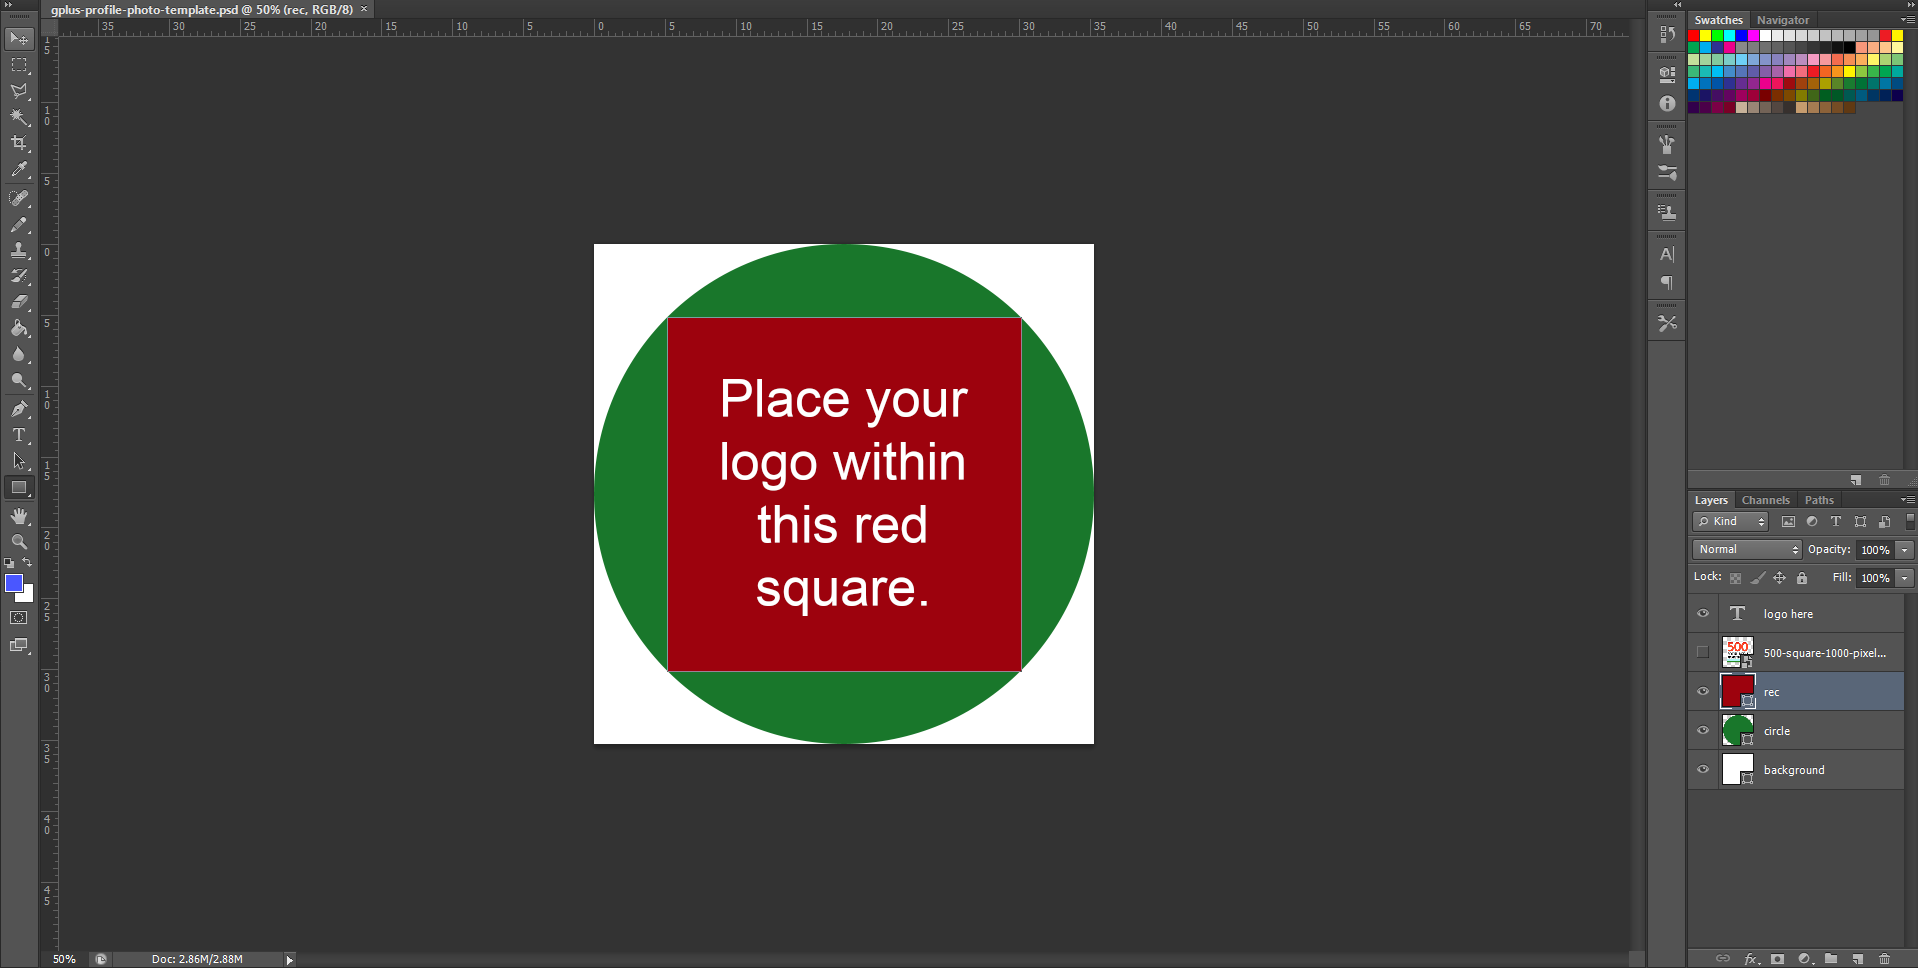 google-plus-profile-photo-square-logo-in-circle-template-ps.PNG